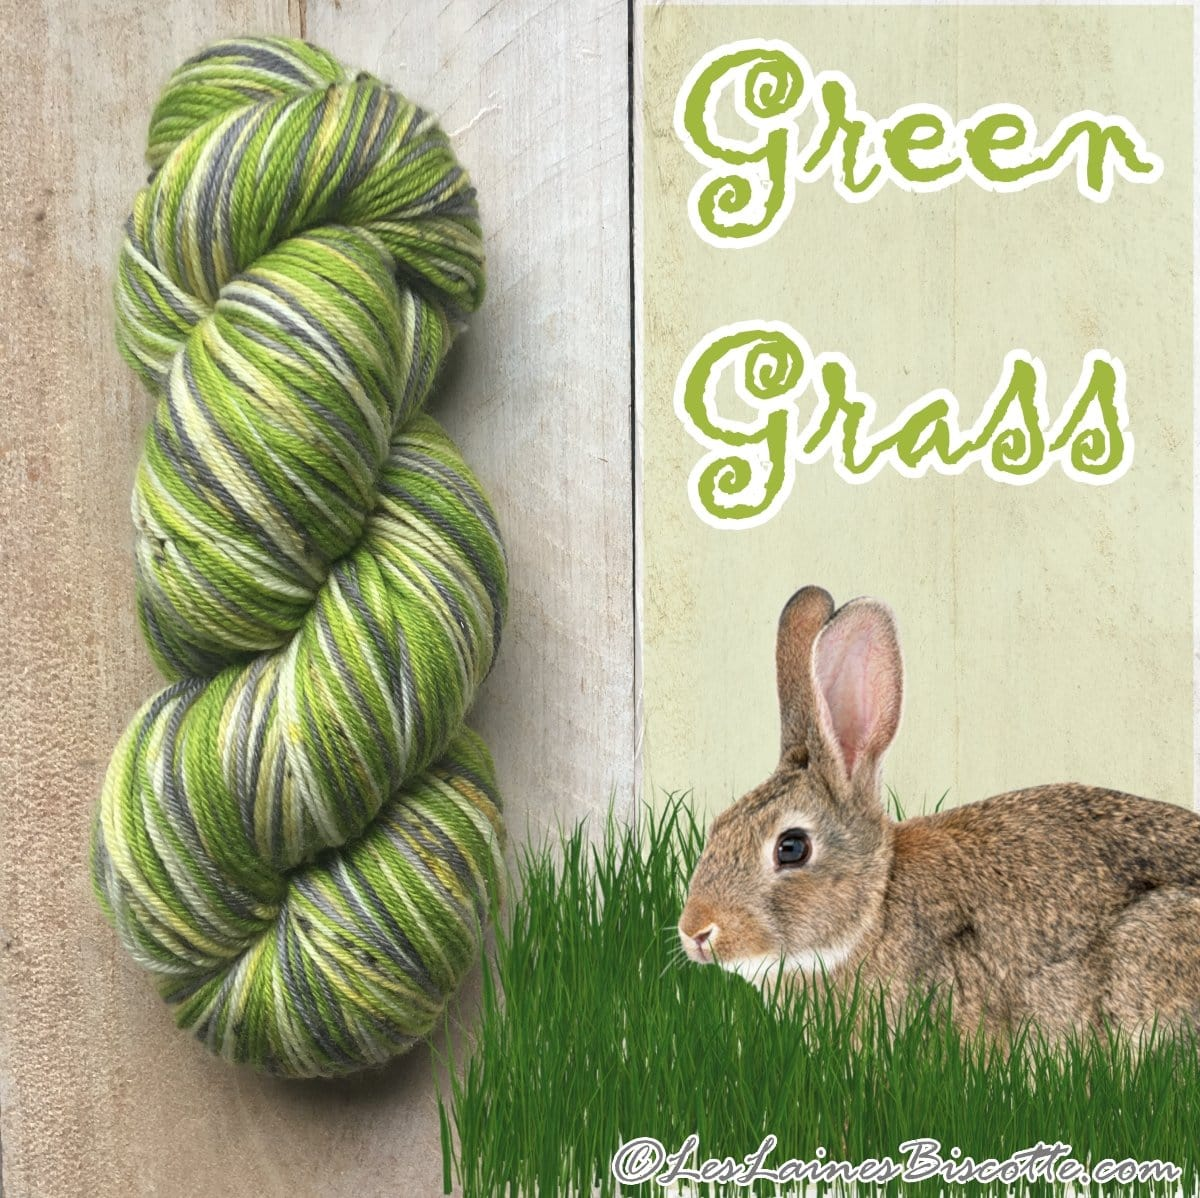 Bis-sock yarn '' Green Grass '' self-striping hand-dyed yarn